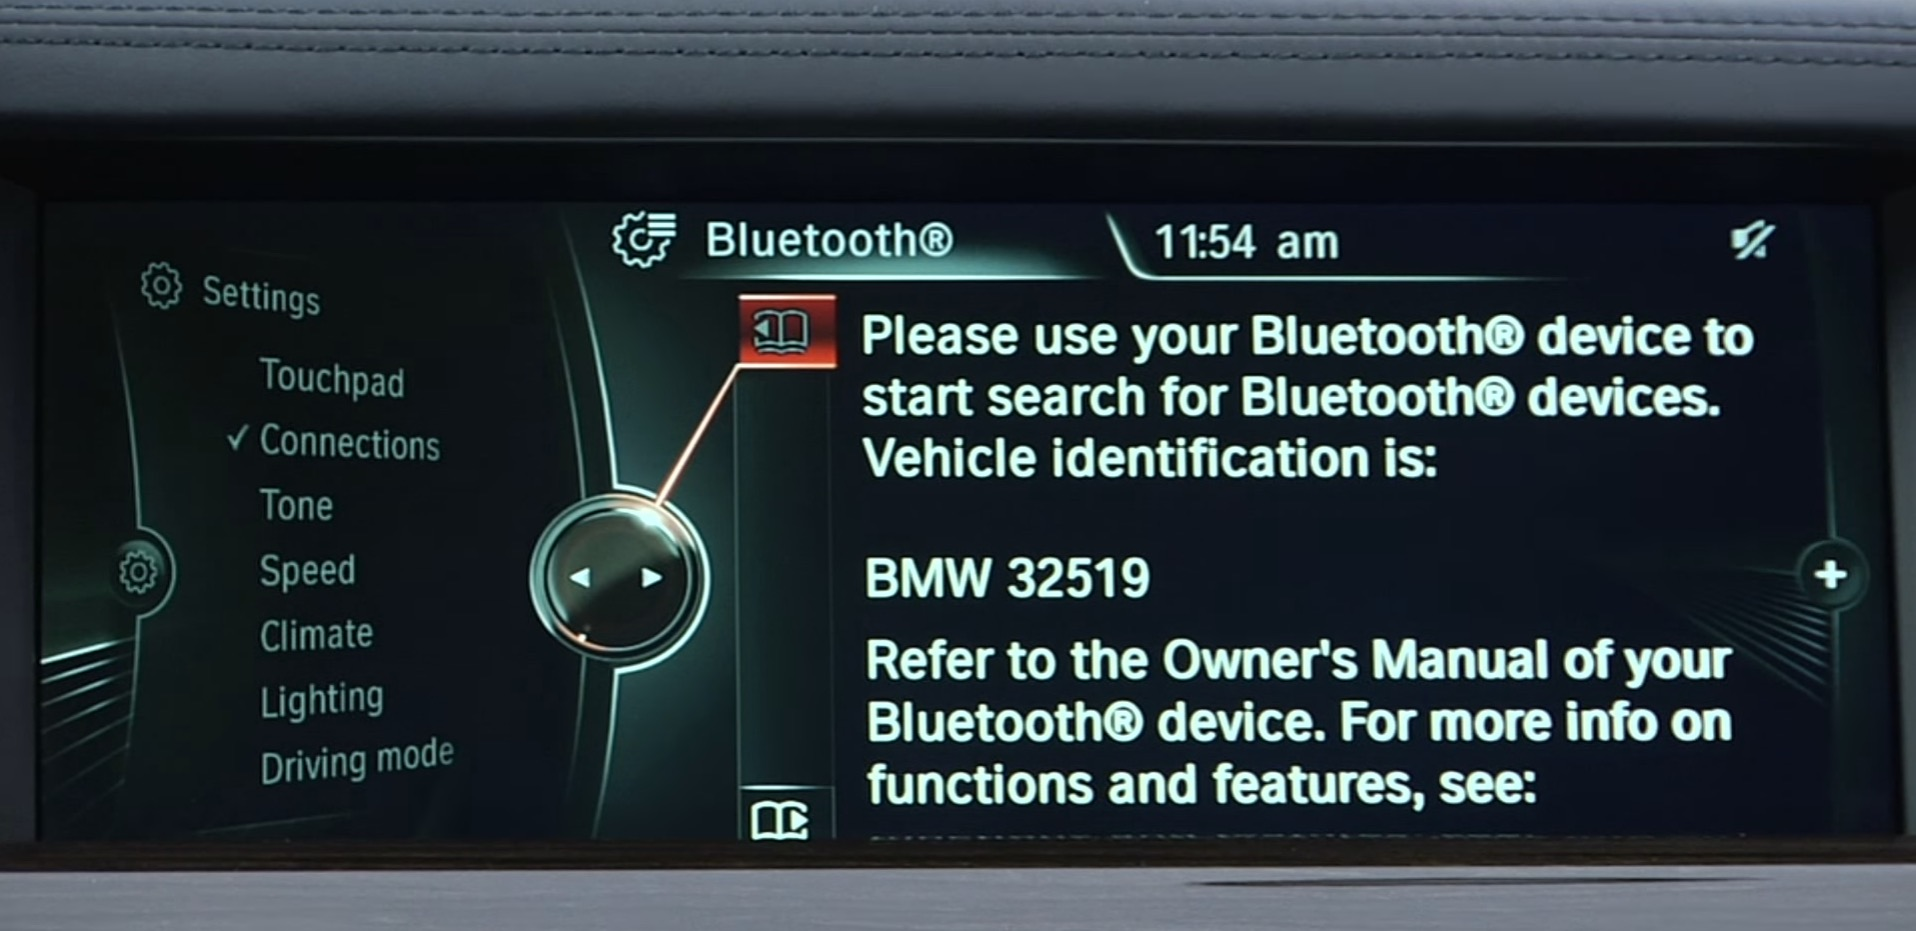 bmw install free installation kit blogs the in instructions navigation bluetooth sirius hands how to